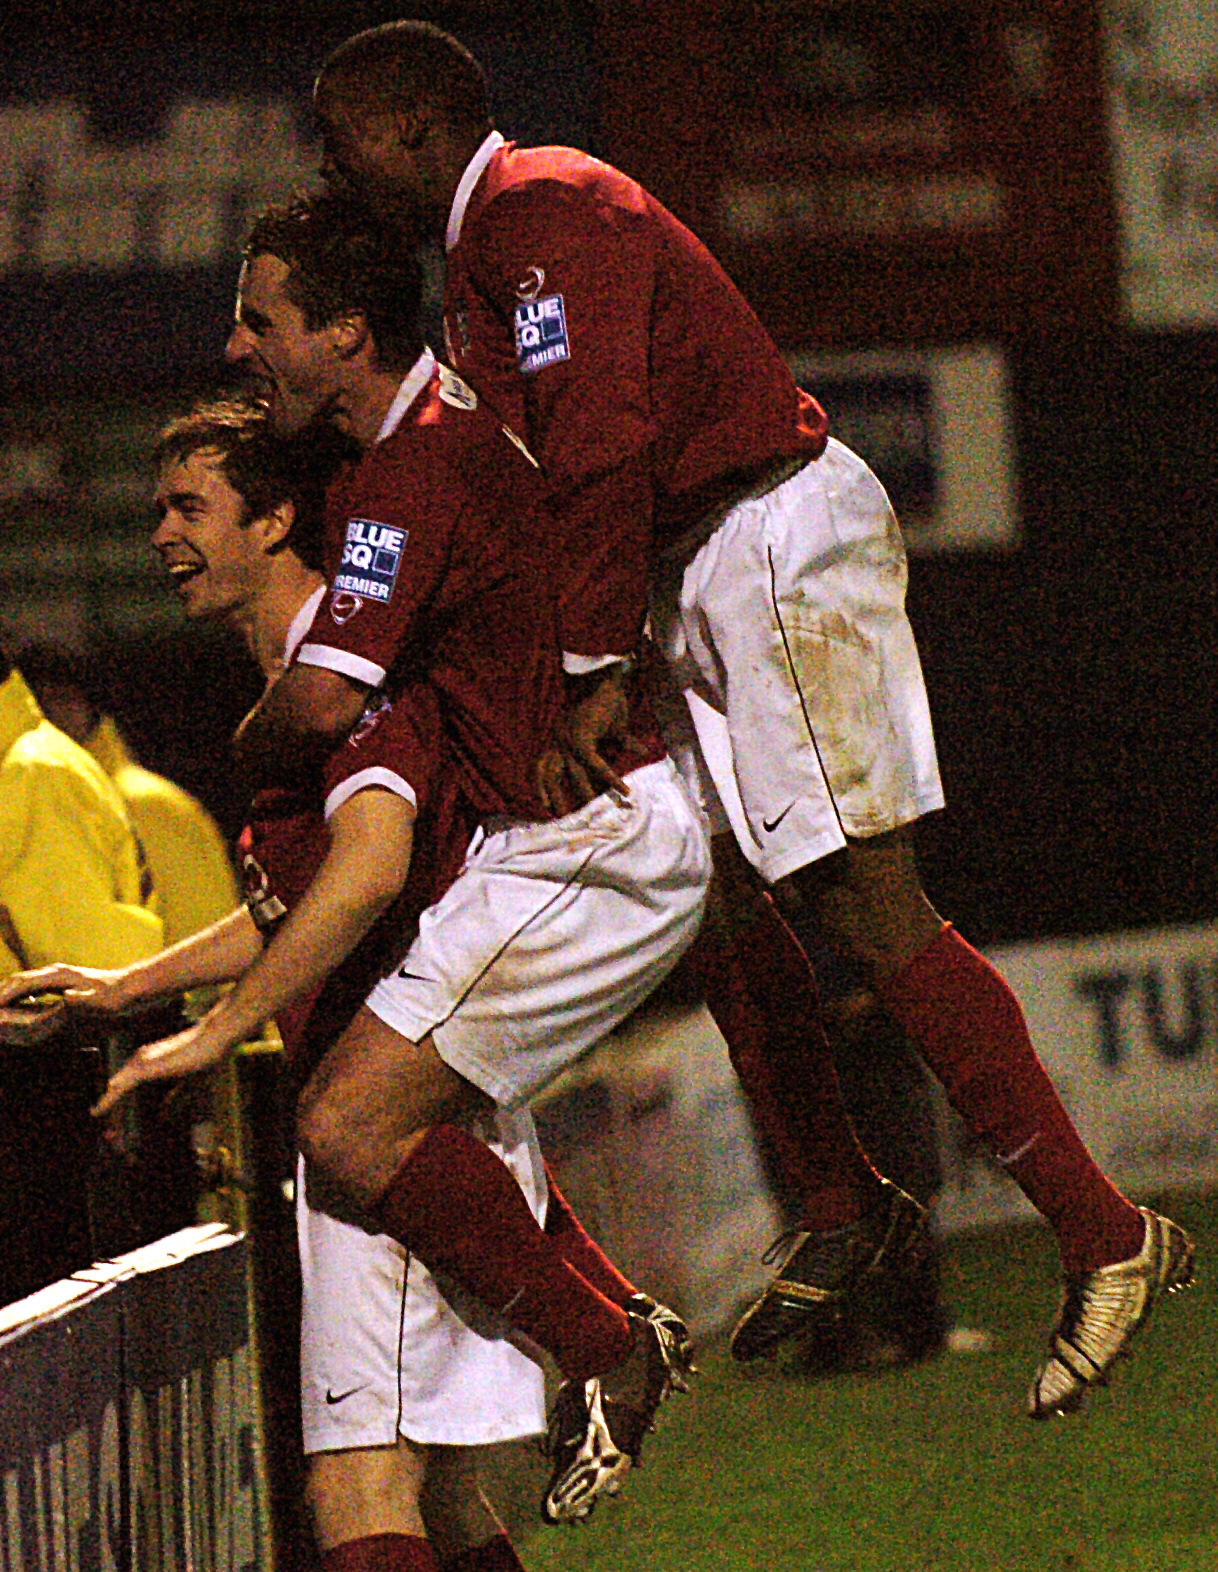 PROVIDING BACK-UP: David McGurk has been appointed assistant-manager at Hyde United by Darren Kelly, who is pictured jumping on his former York City team-mate as the pair celebrate a goal against Weymouth with Manny Panther